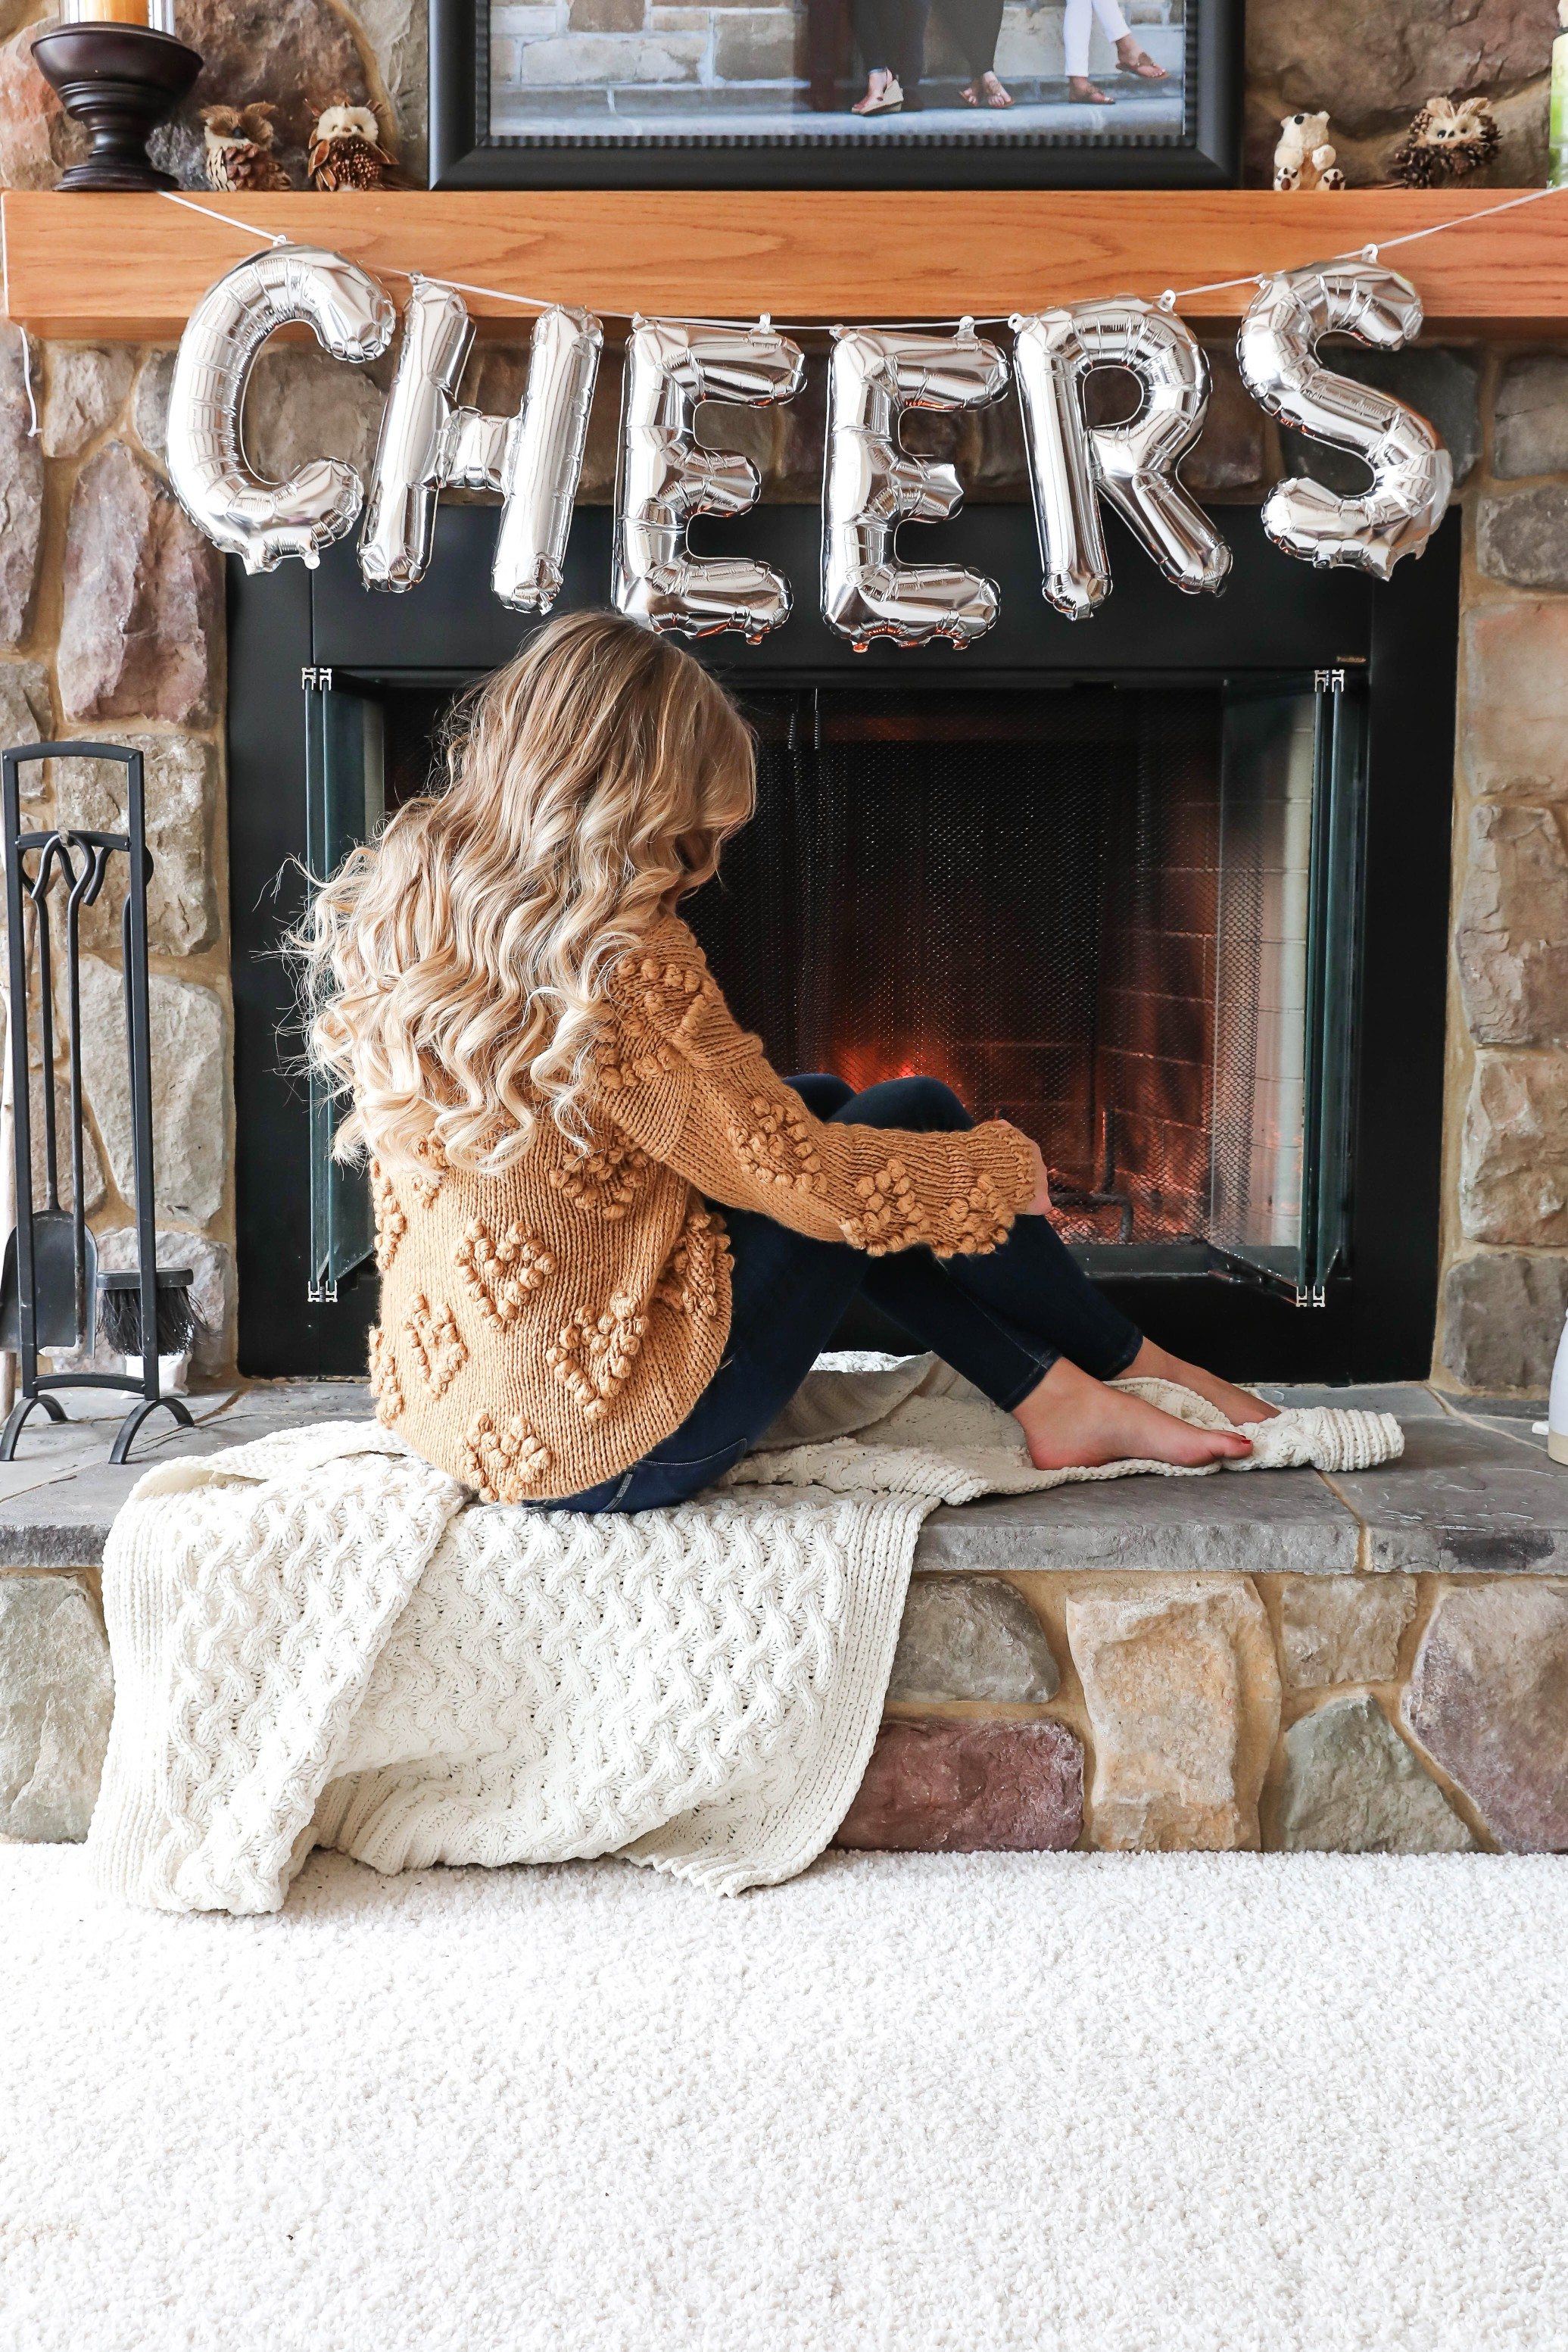 "Happy New Year! The cutest photoshoot with ""cheers"" balloons! New Year's Eve photoshoot next to a cozy fireplace! I also list out all my resolutions for the year! My cute Pomeranian pup is featured in some of the photos! Details on fashion blog daily dose of charm by lauren lindmark"